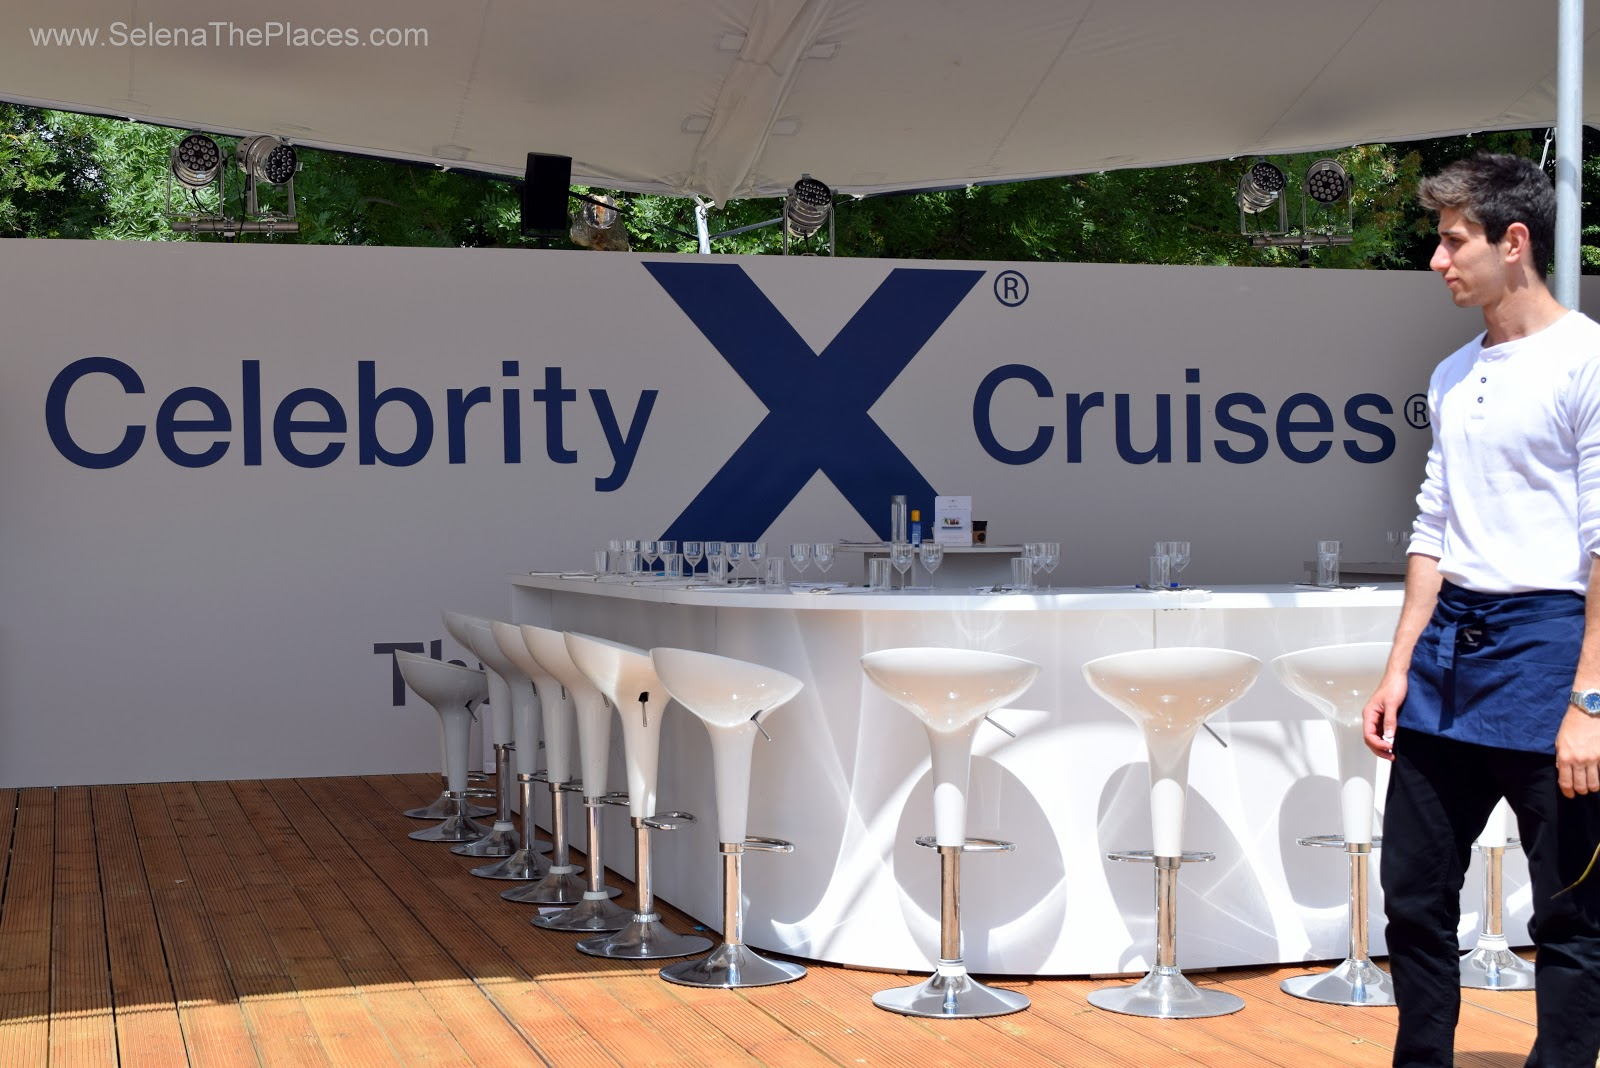 Taste of London 2015 & Celebrity Cruises